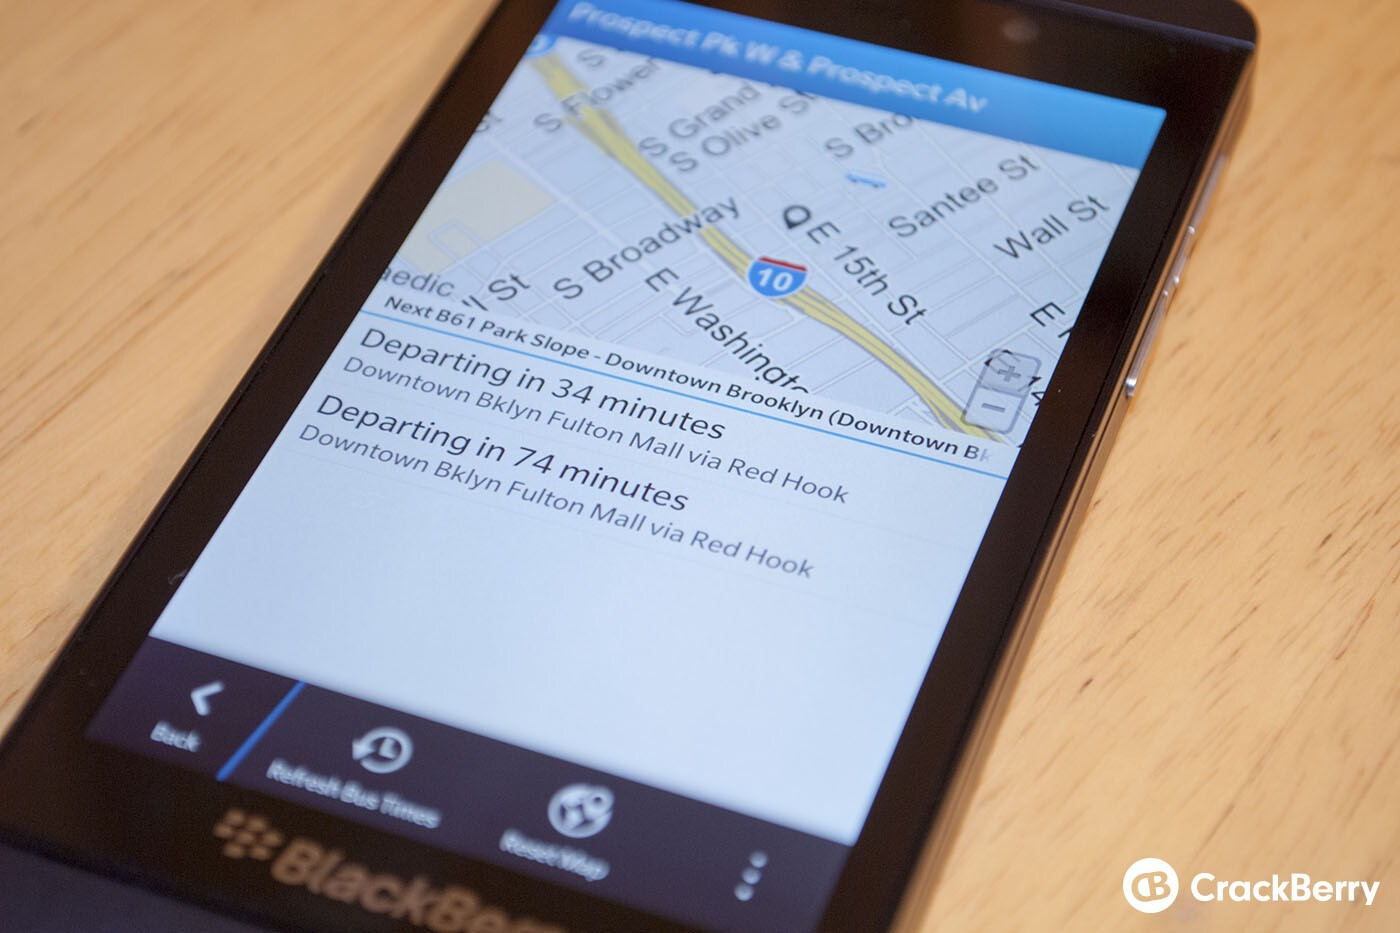 Where's My Bus? for BlackBerry 10